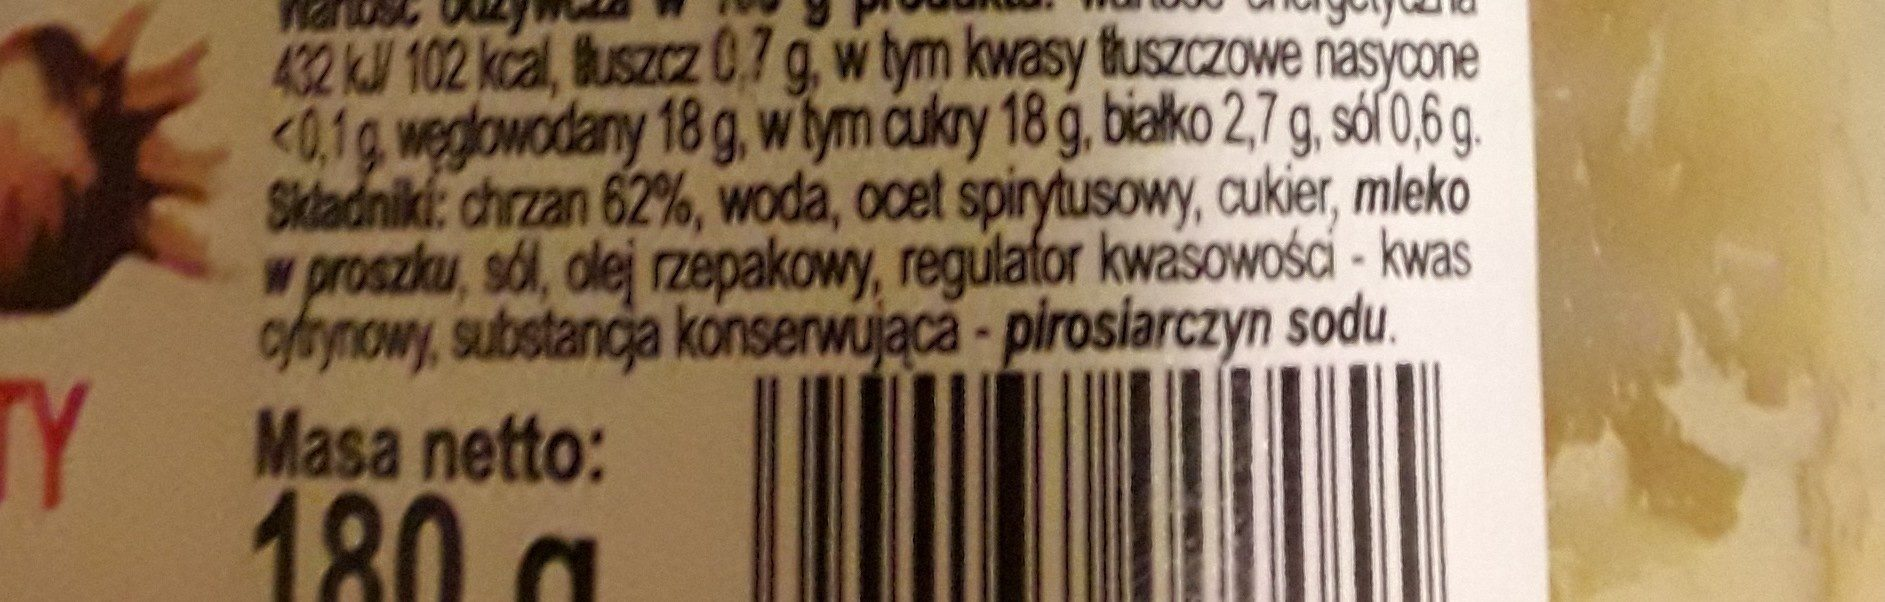 Polonaise Chrzan Tarty 180G - Ingredients - fr